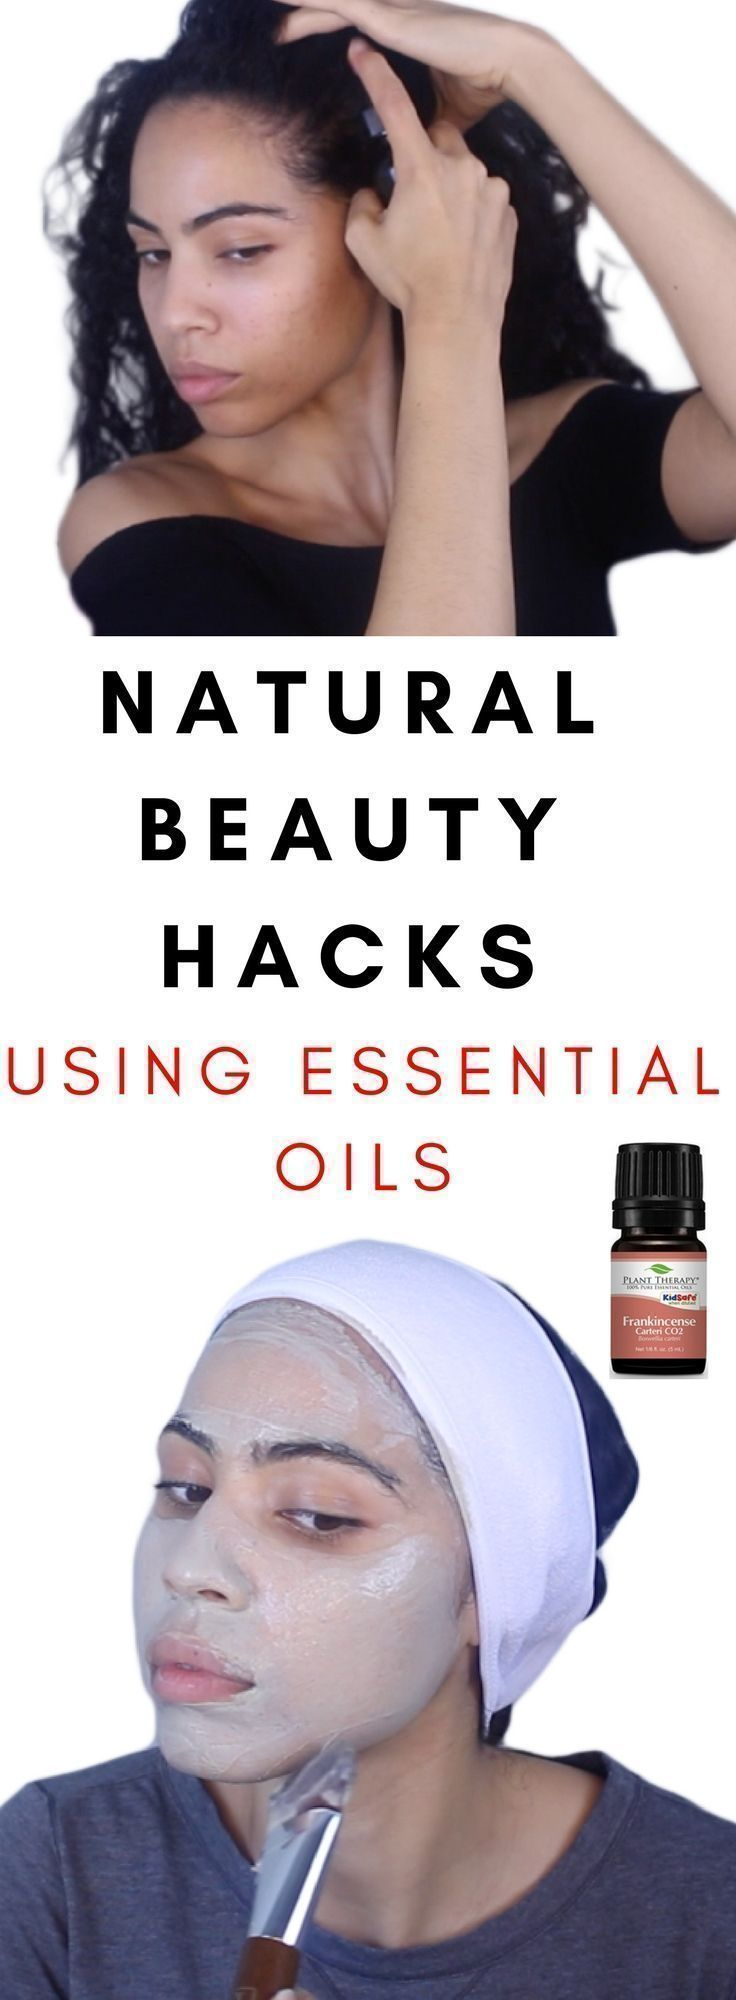 DIY/at home beauty hacks using essential oils for acne, scars, hyperpigmentation...